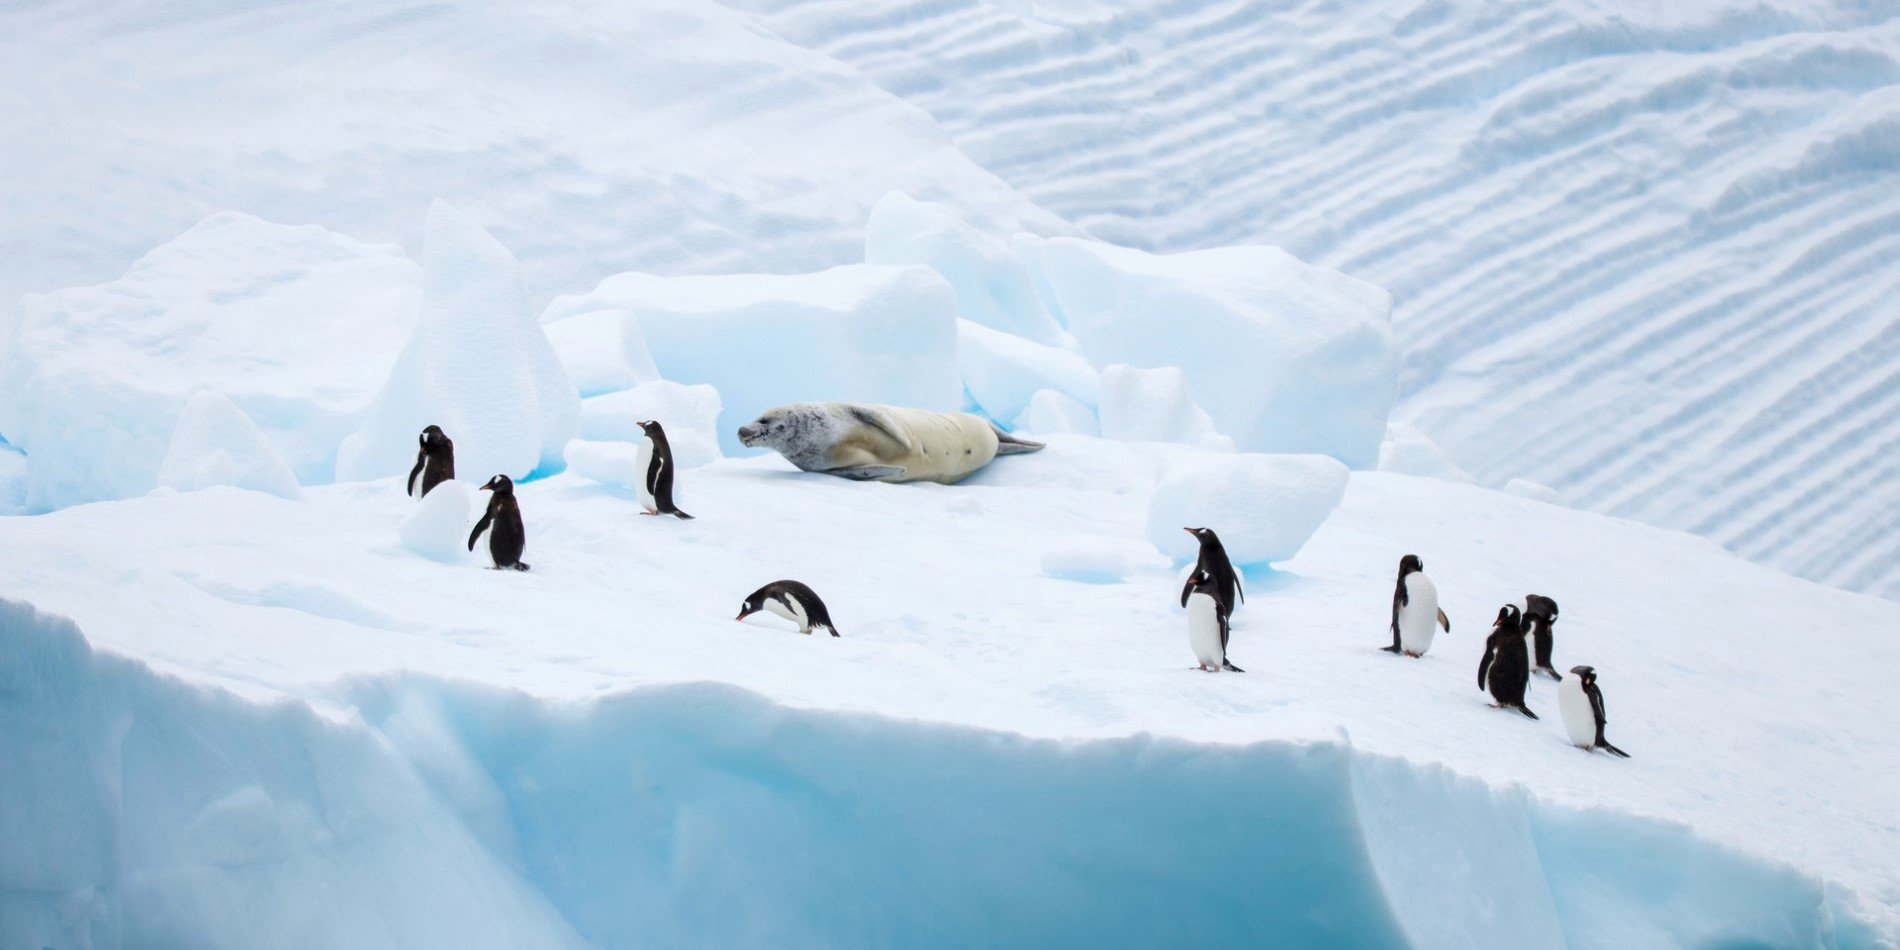 Penguins and seal seen floating on ice in Neko Harbour